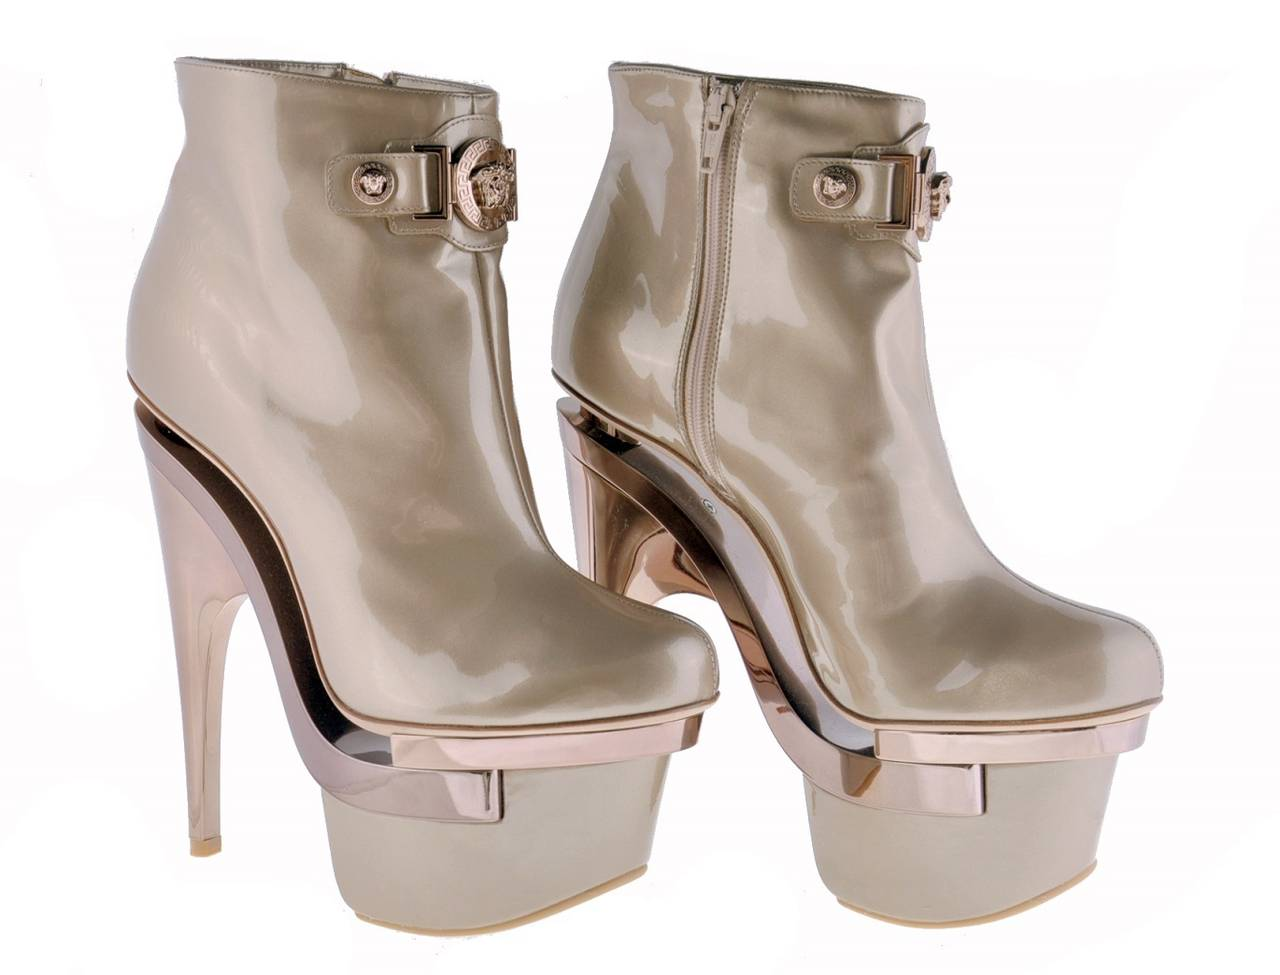 New VERSACE ROSE GOLD TRIPLE PLATFORM BOOTS  2